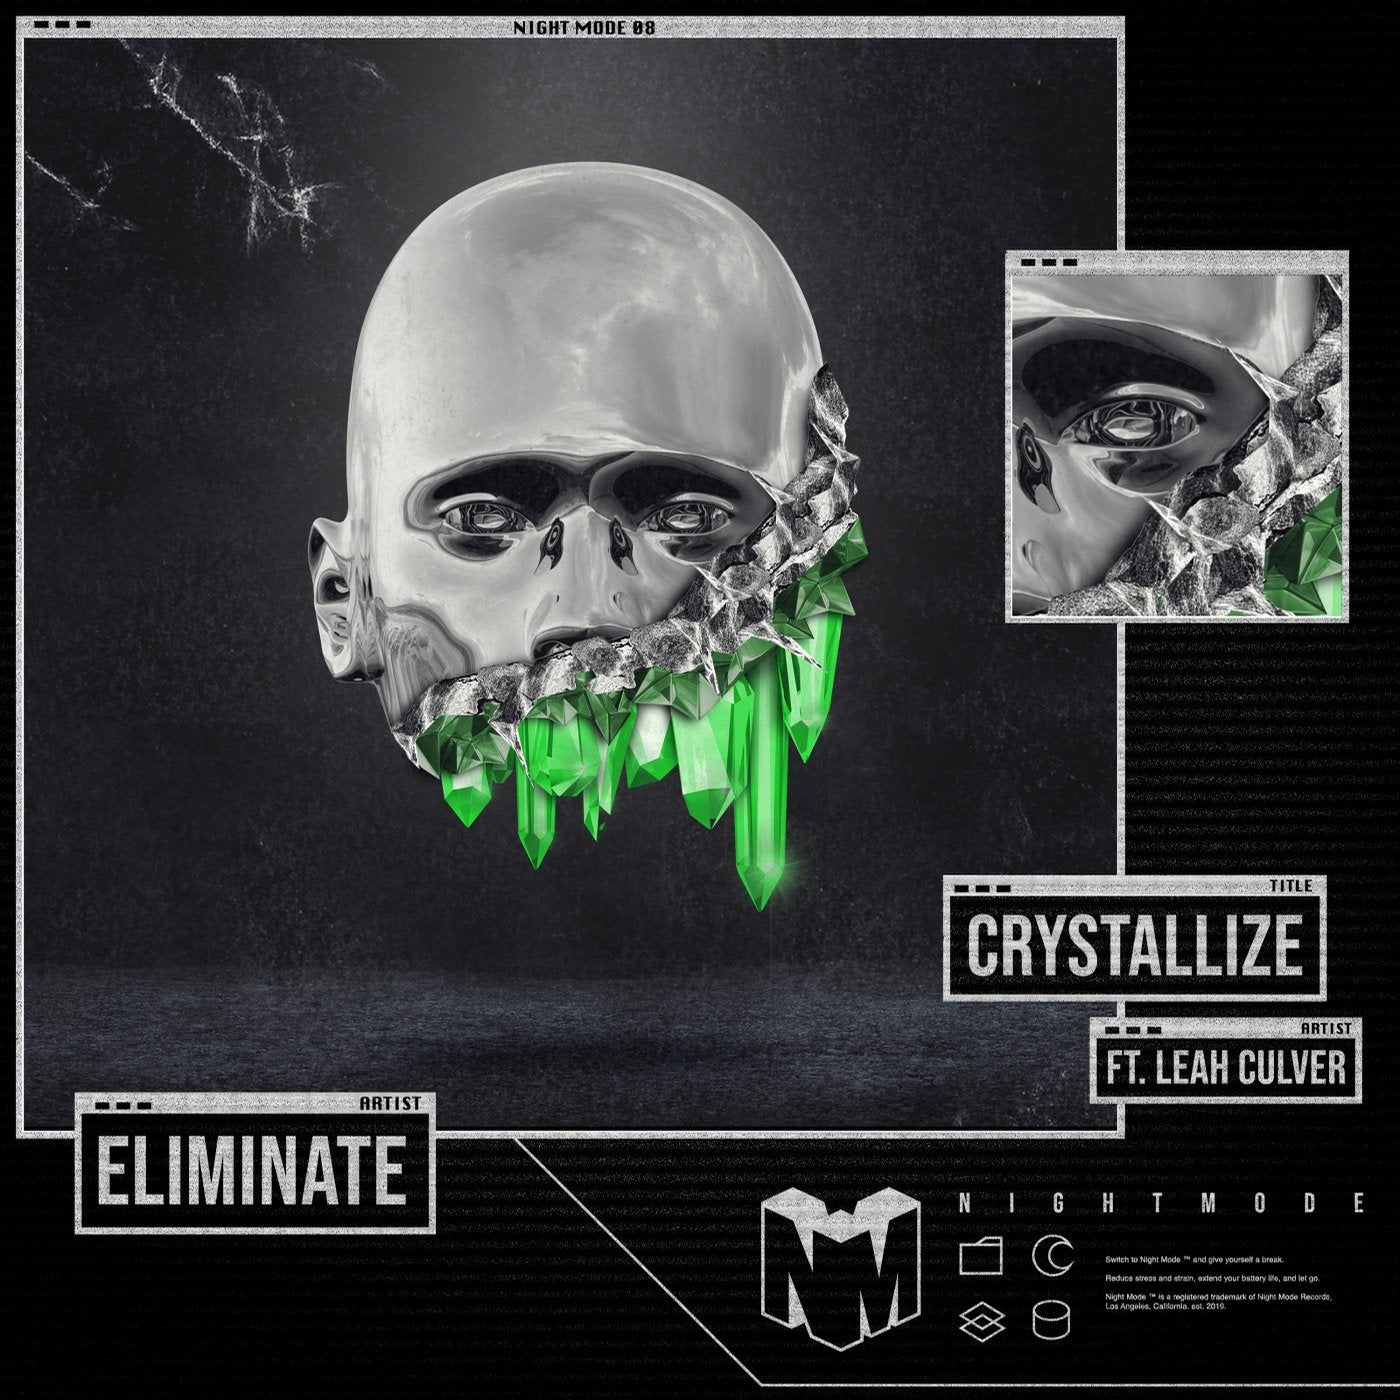 Crystallize (feat. Leah Culver) (Original Mix)